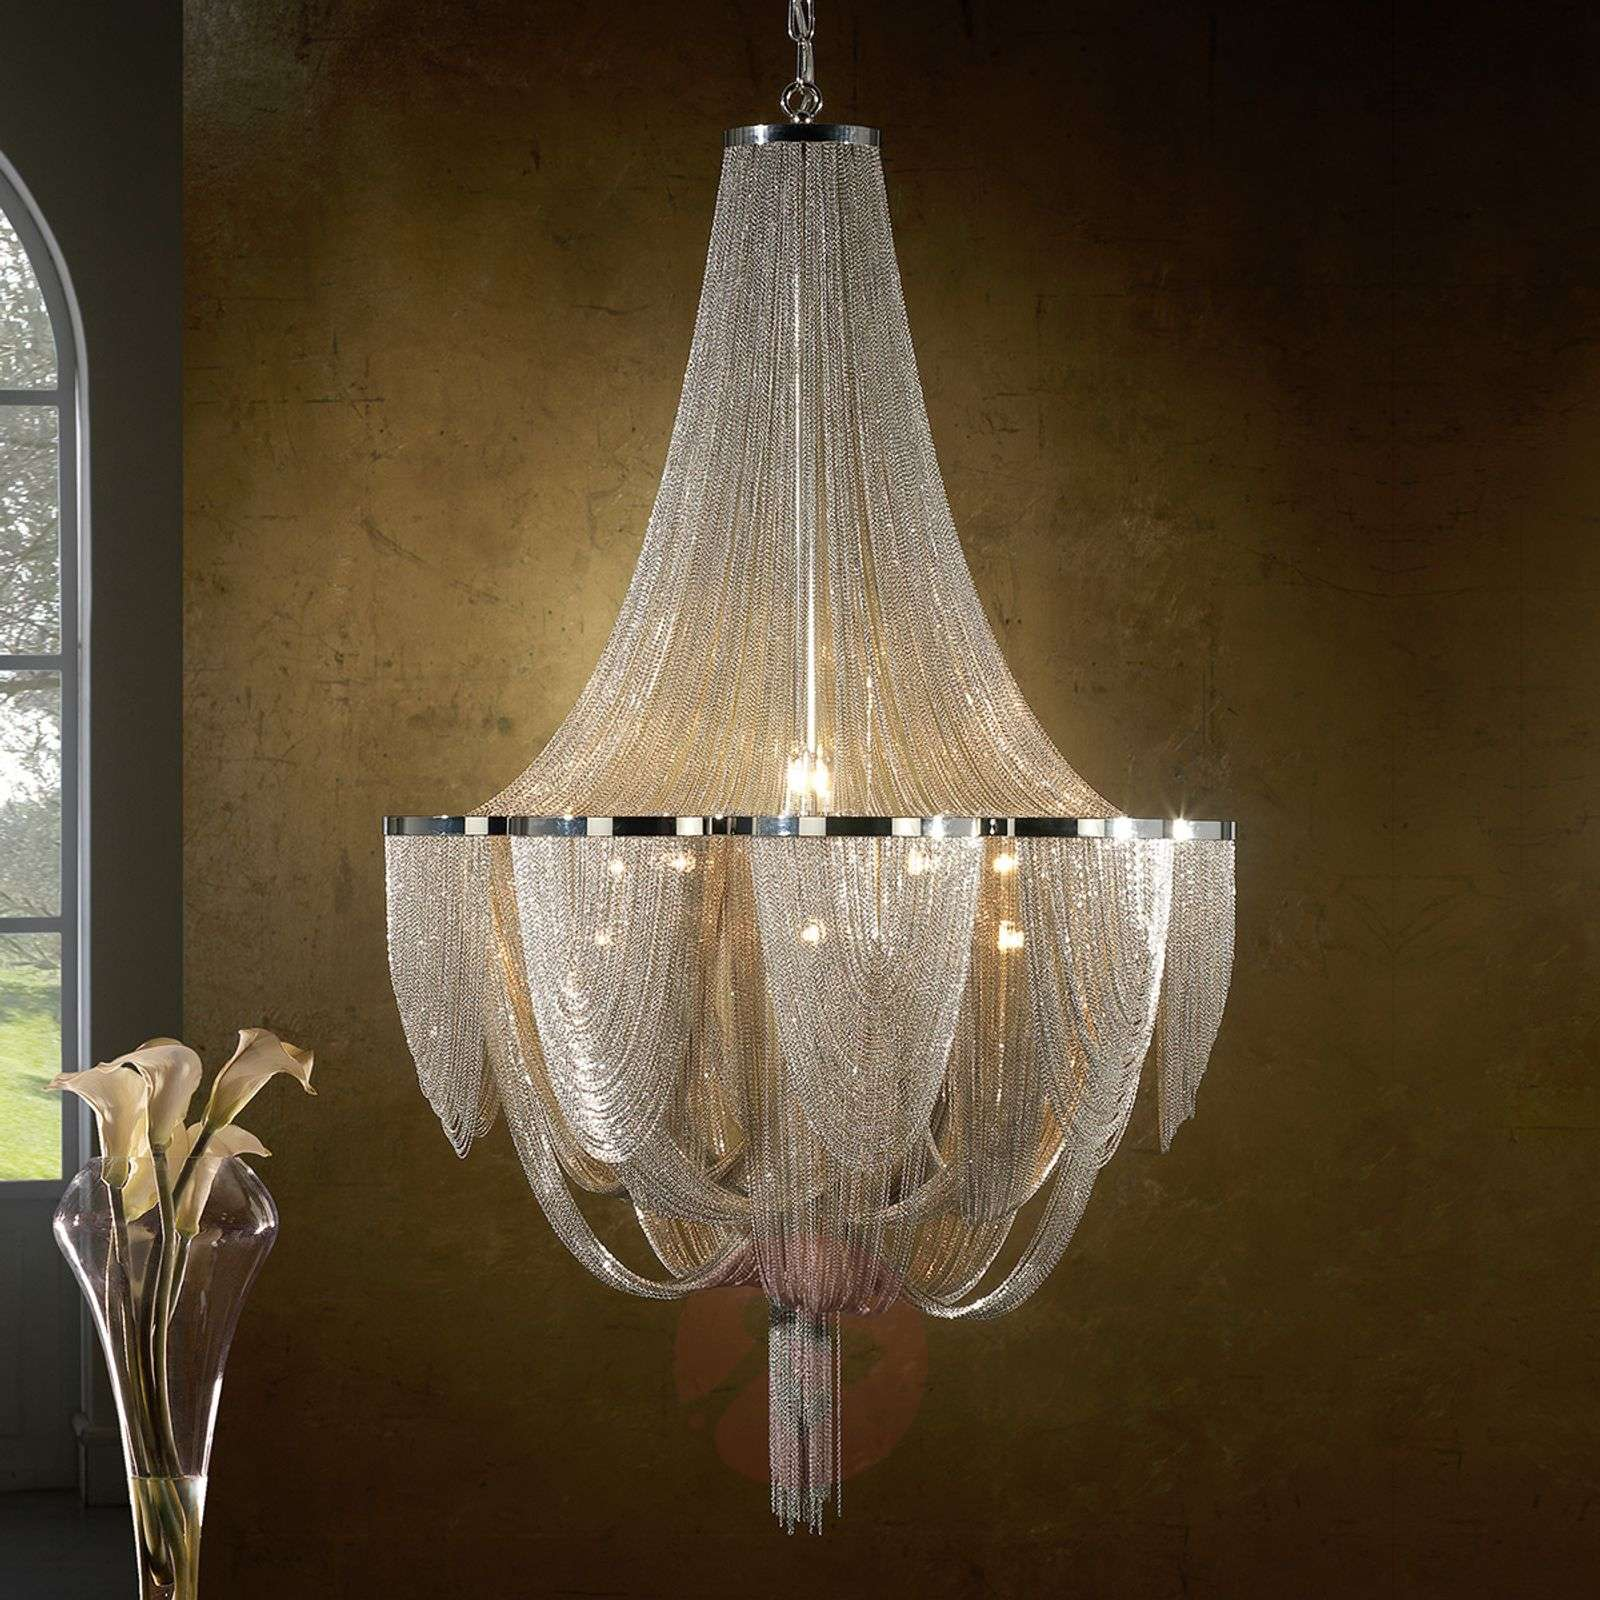 15 Light Chandelier Minerva Lights Co Uk